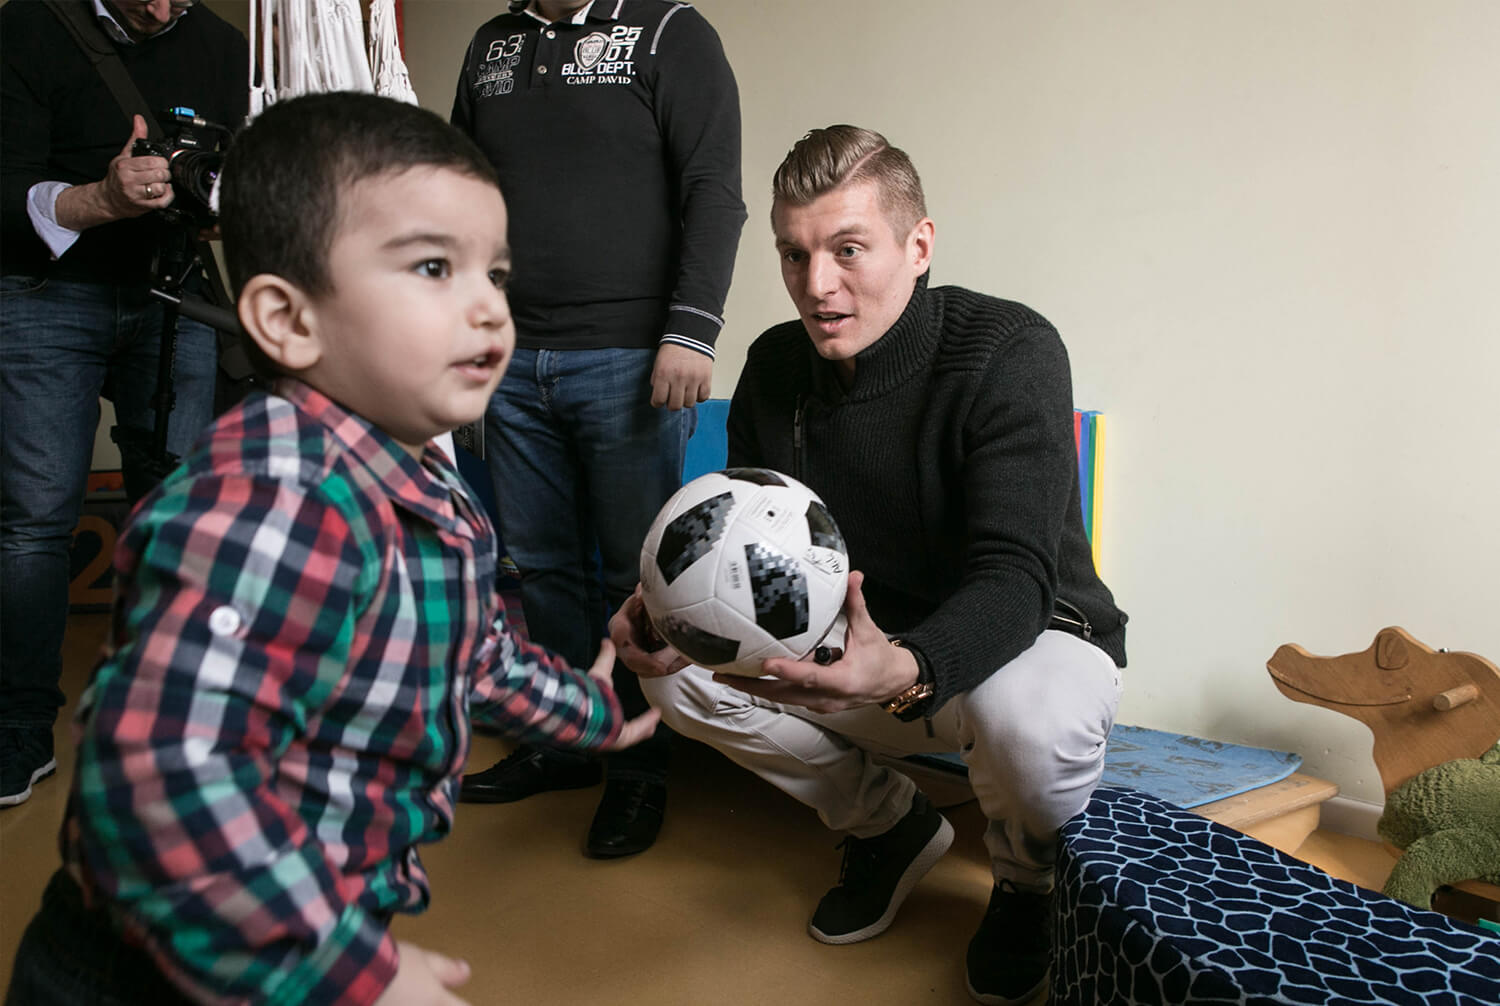 Toni Kroos with a little boy